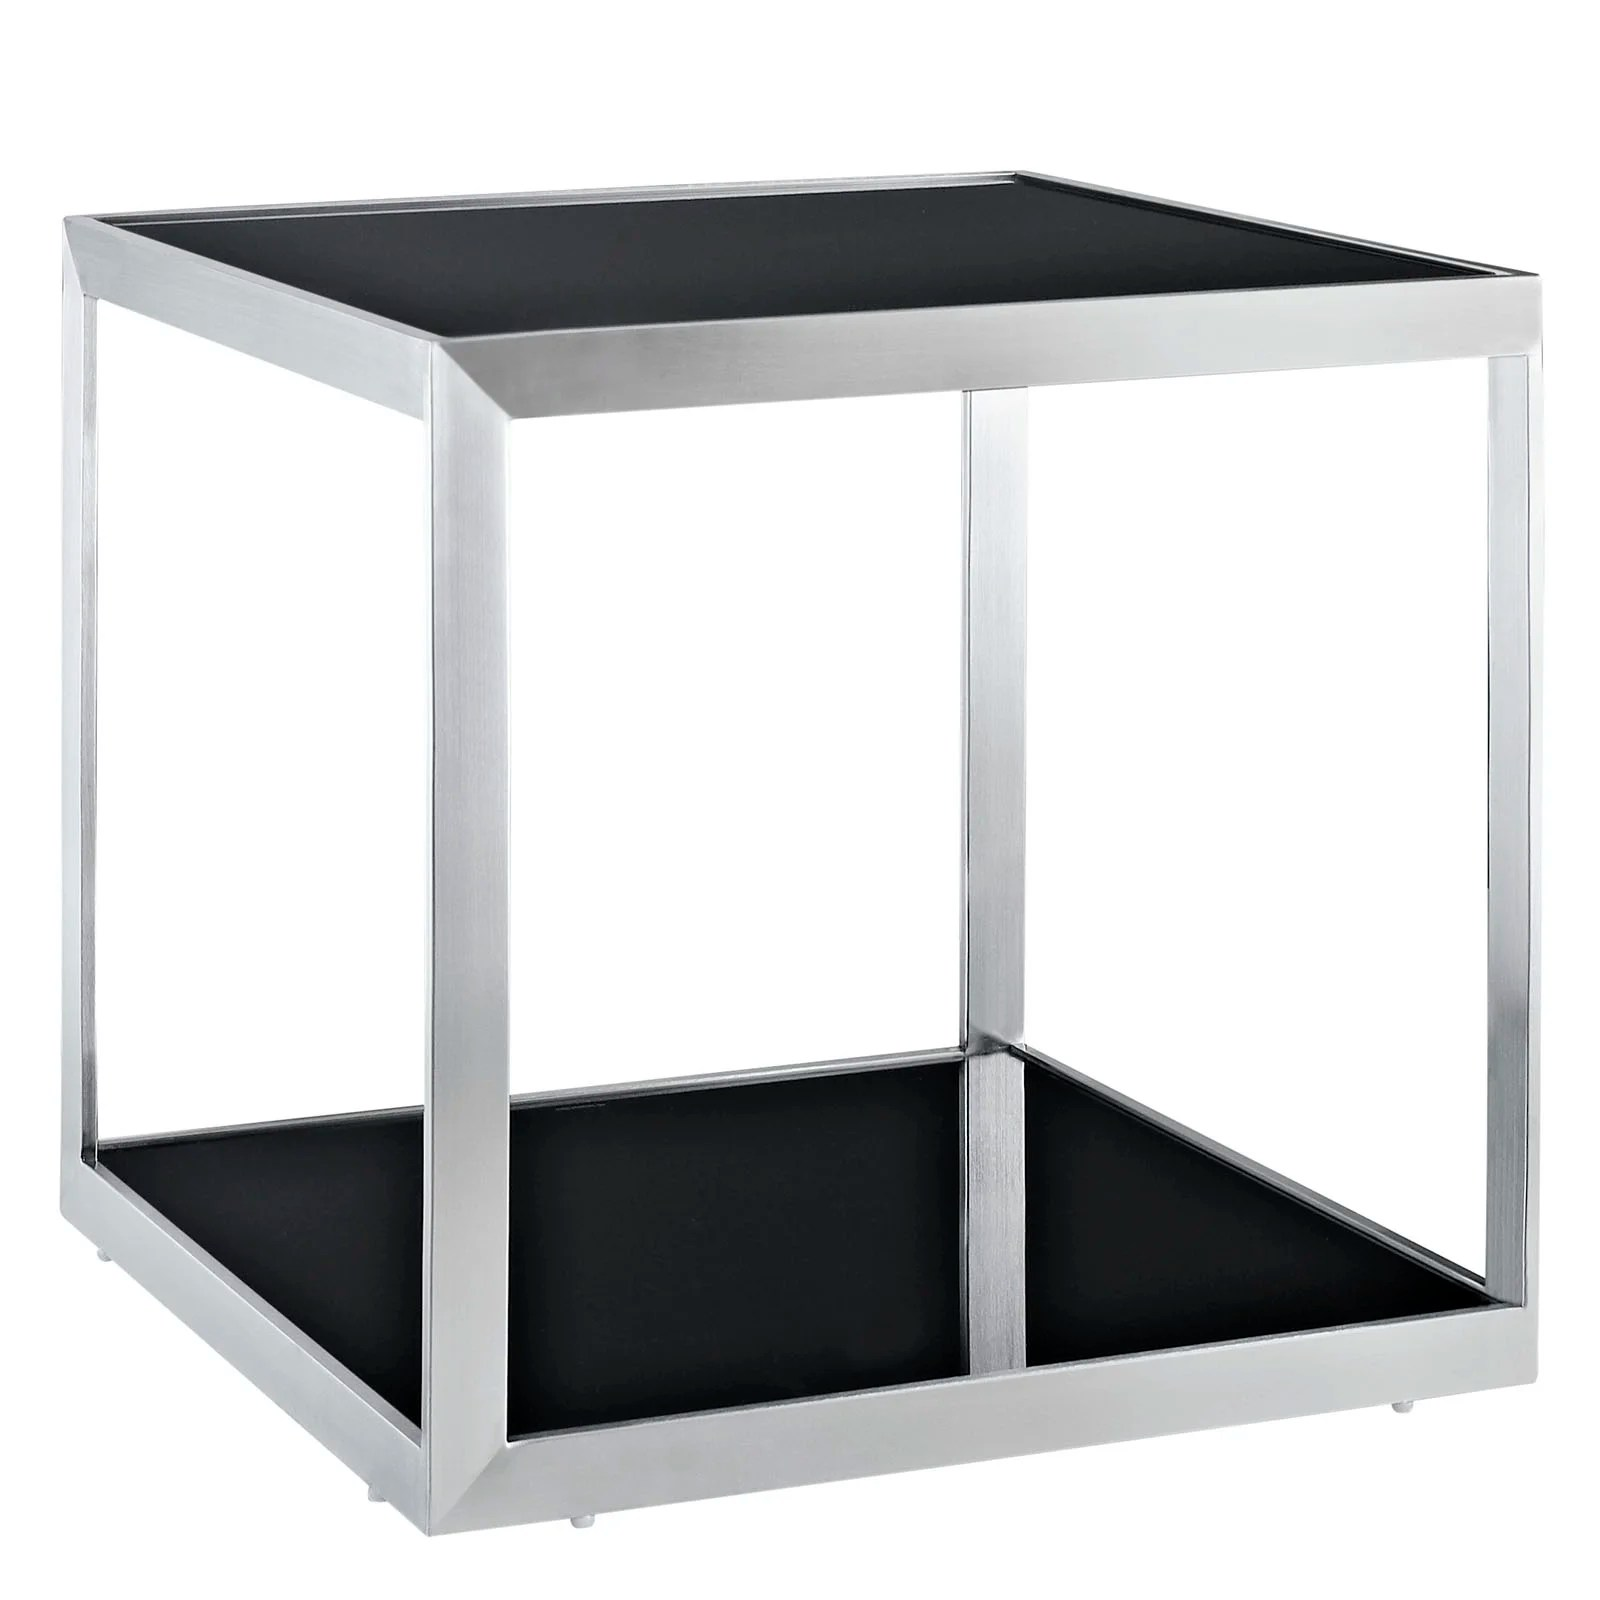 Box End Table Modway Open Box End Table And Reviews Wayfair Ca